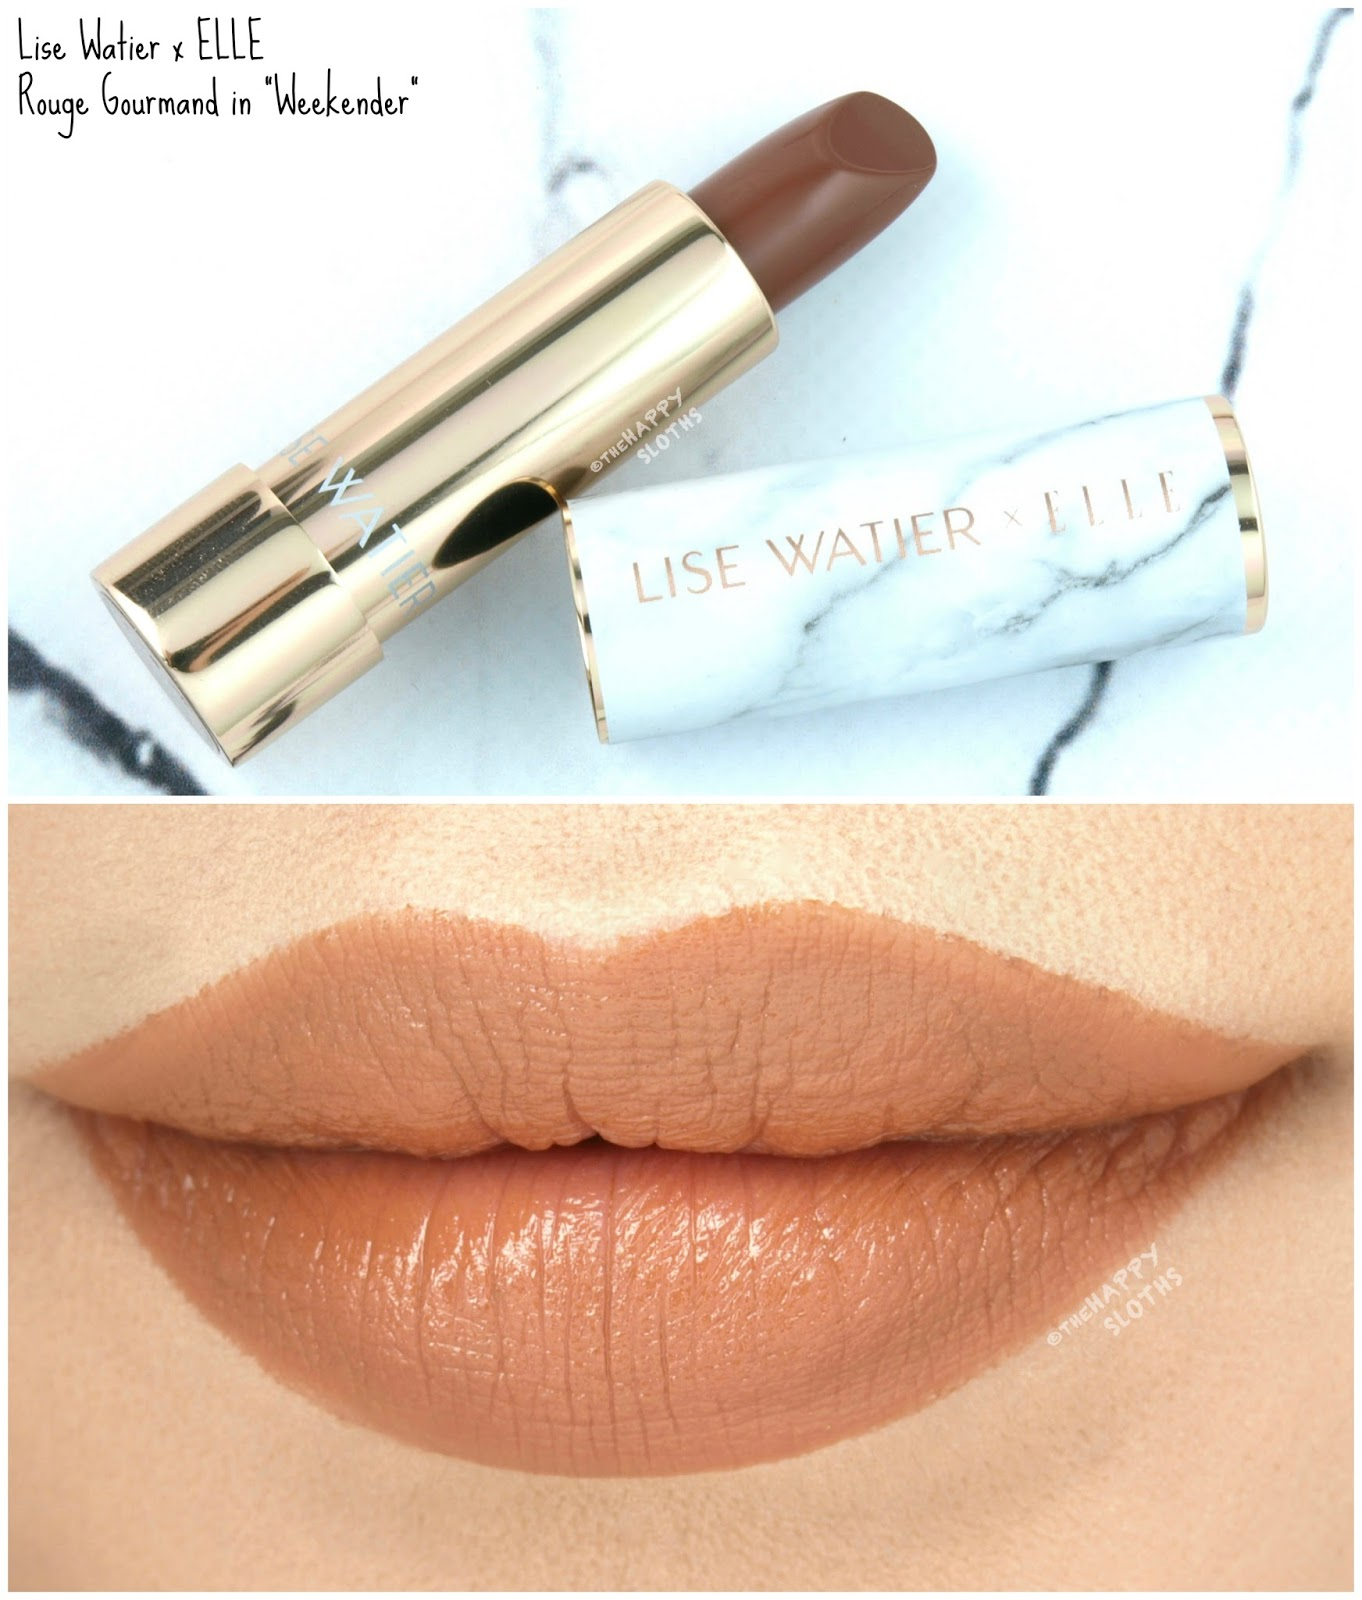 "Lise Watier x ELLE Rouge Gourmand Lipstick in ""Weekender"": Review and Swatches"